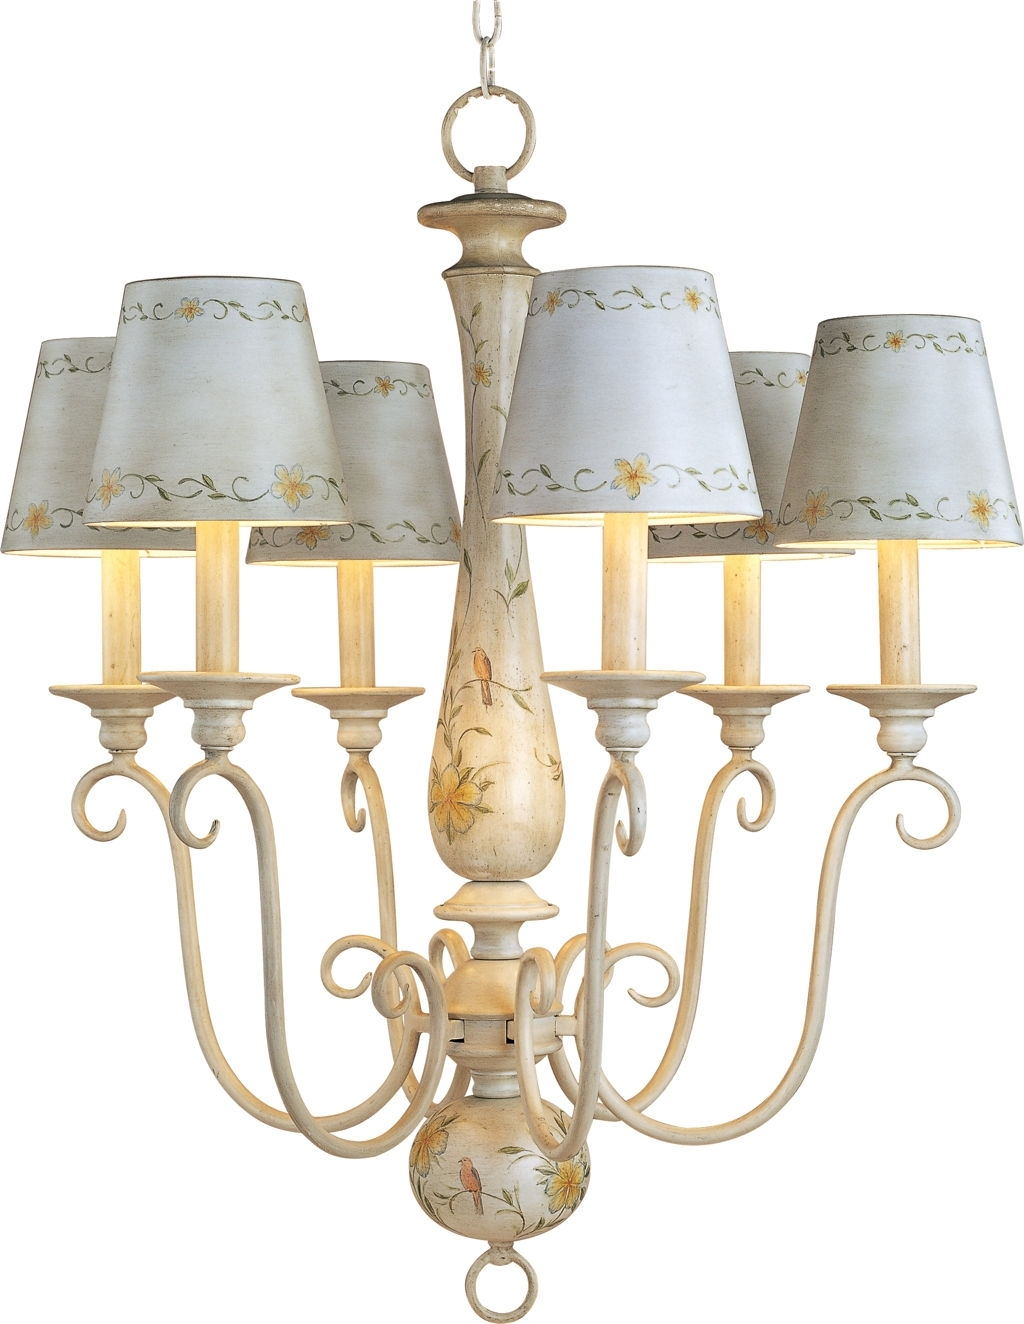 Latest Chandelier Lamp Shades Plus 5 Inch Lamp Shades Plus Small Clip On With Regard To Clip On Chandelier Lamp Shades (View 9 of 15)